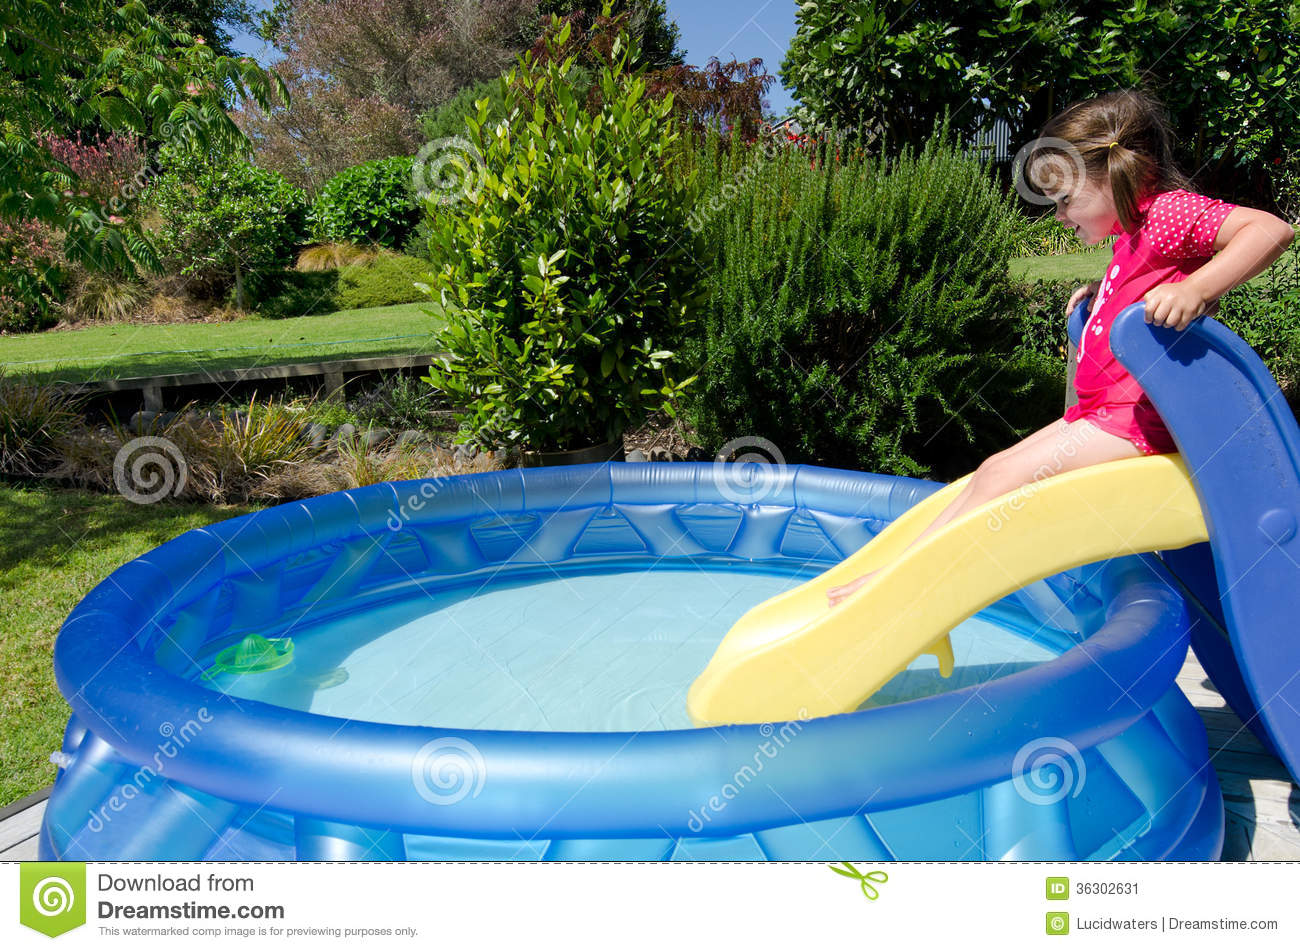 Child In Children Inflatable Pool Stock Image Image of portrait